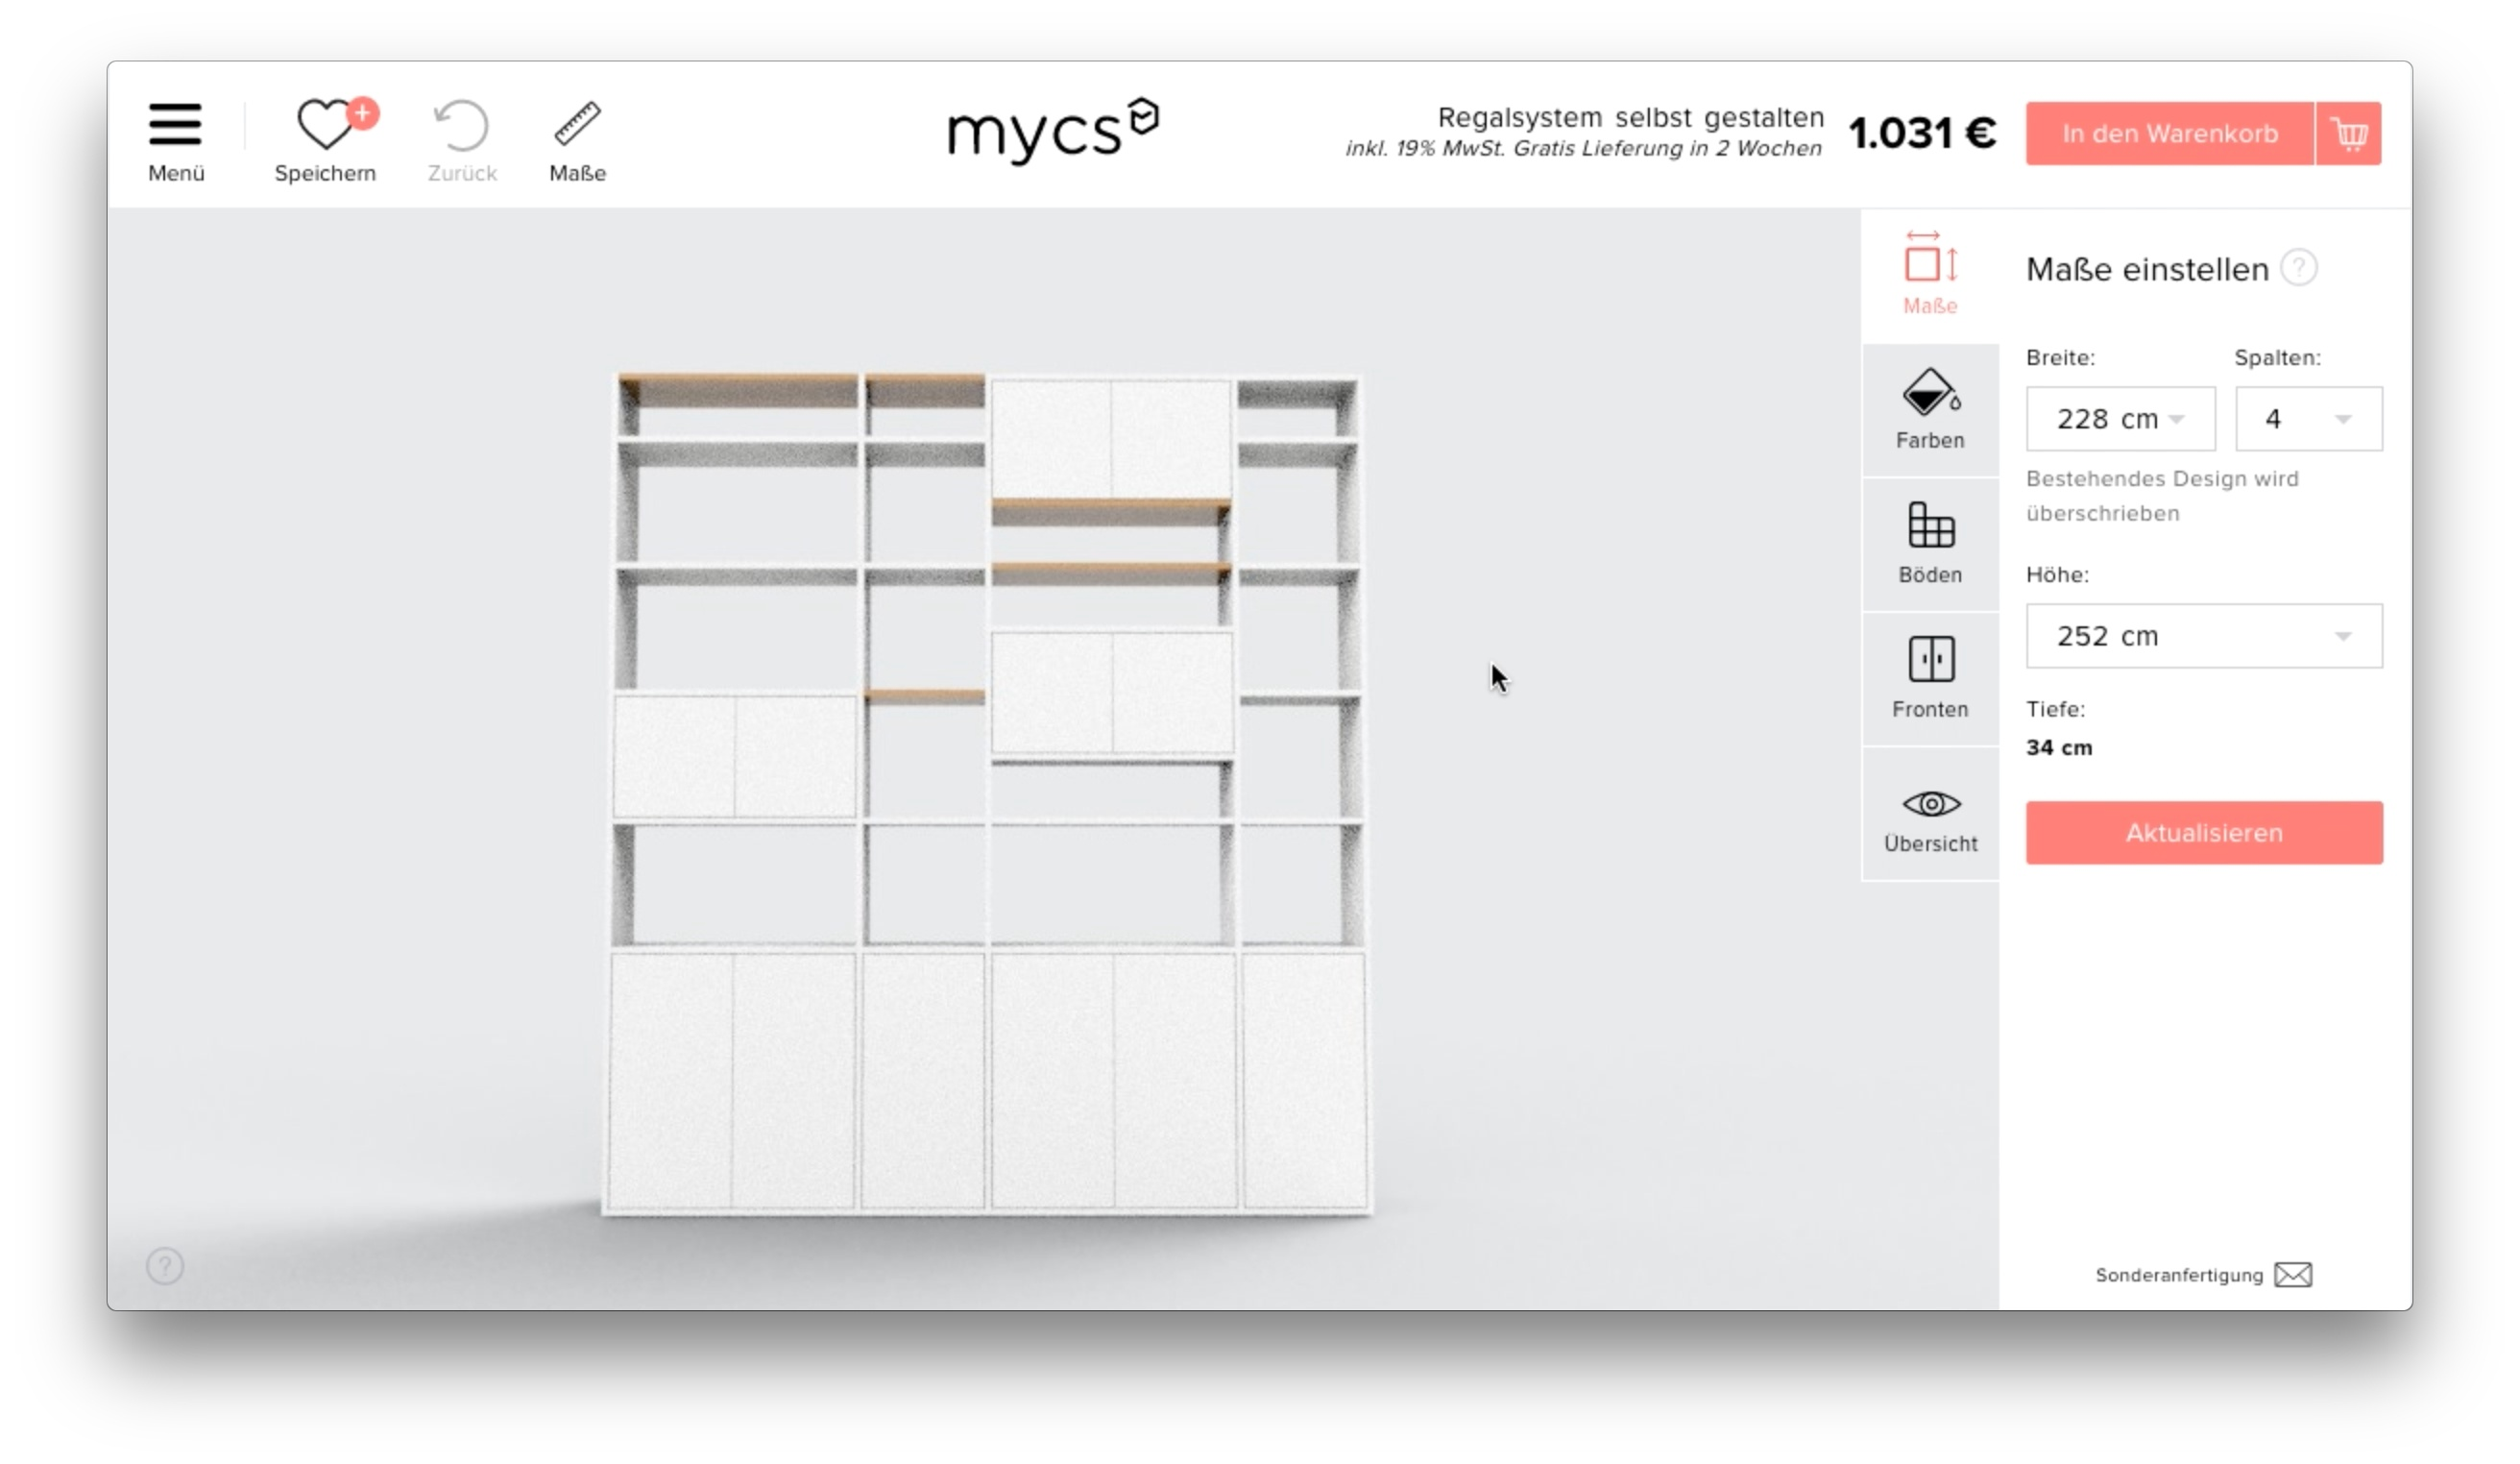 The furniture configurator before the redesign.